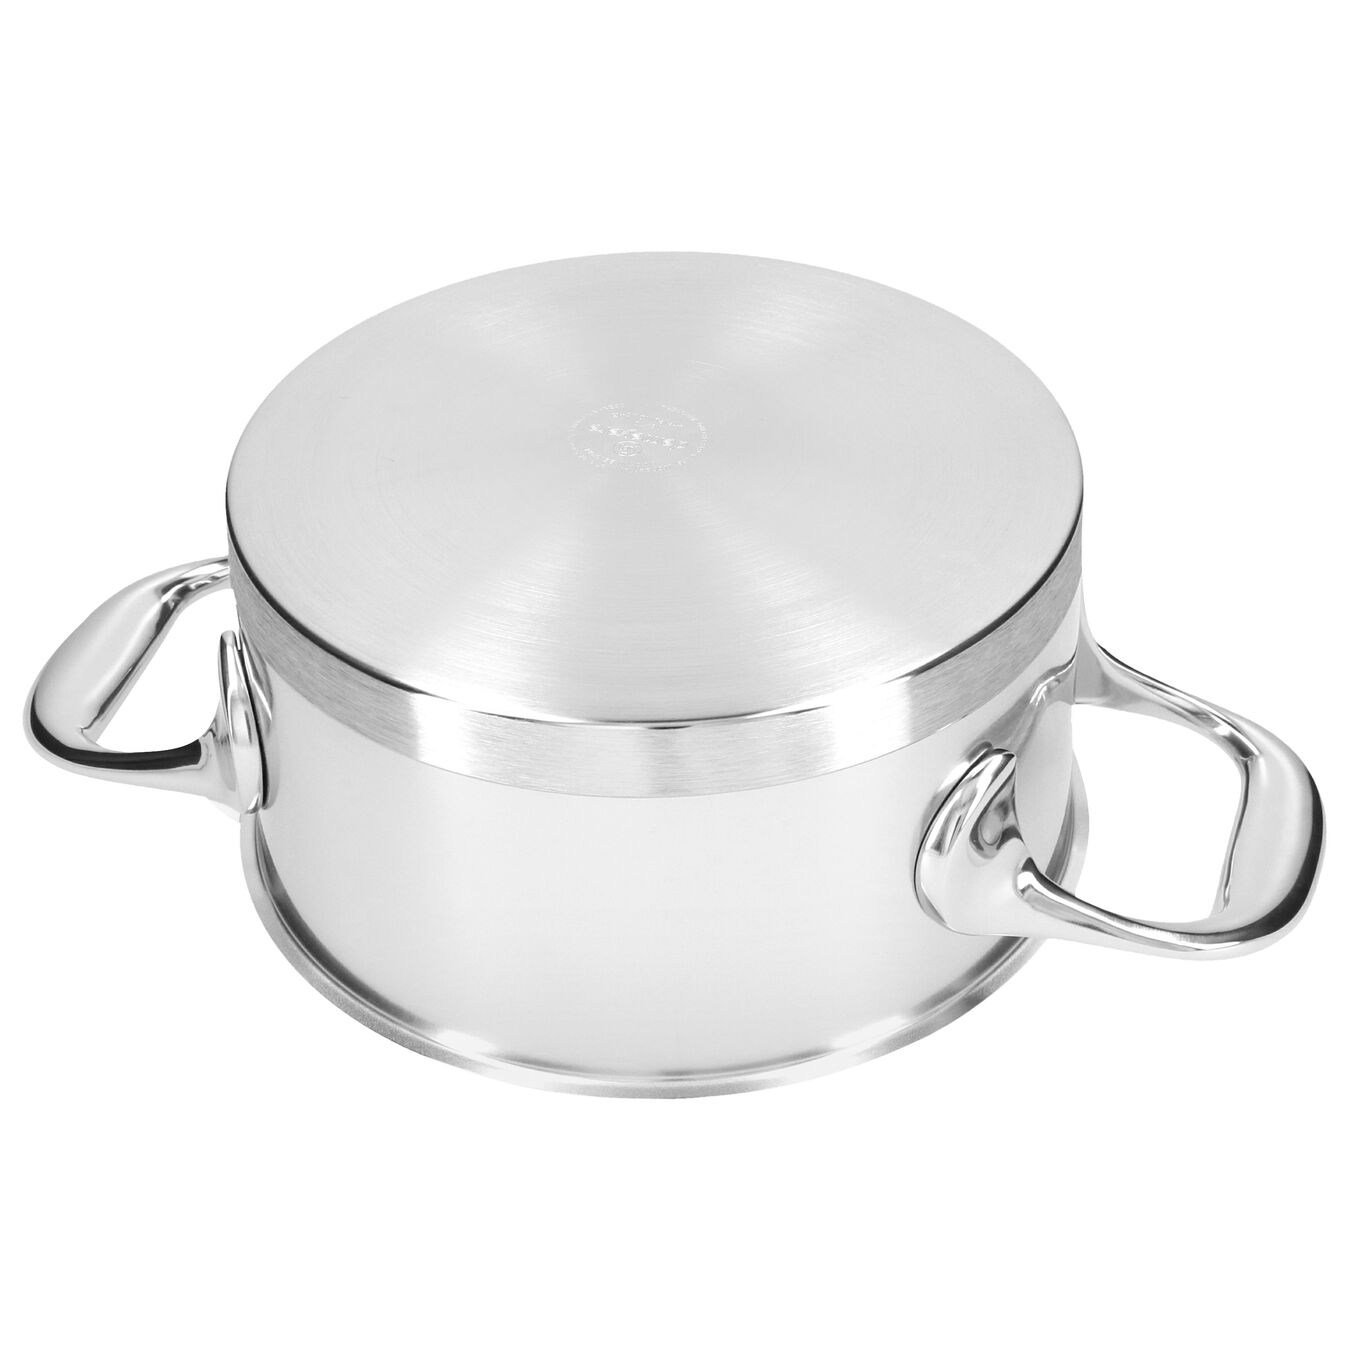 1.5 l 18/10 Stainless Steel Stew pot with lid,,large 4